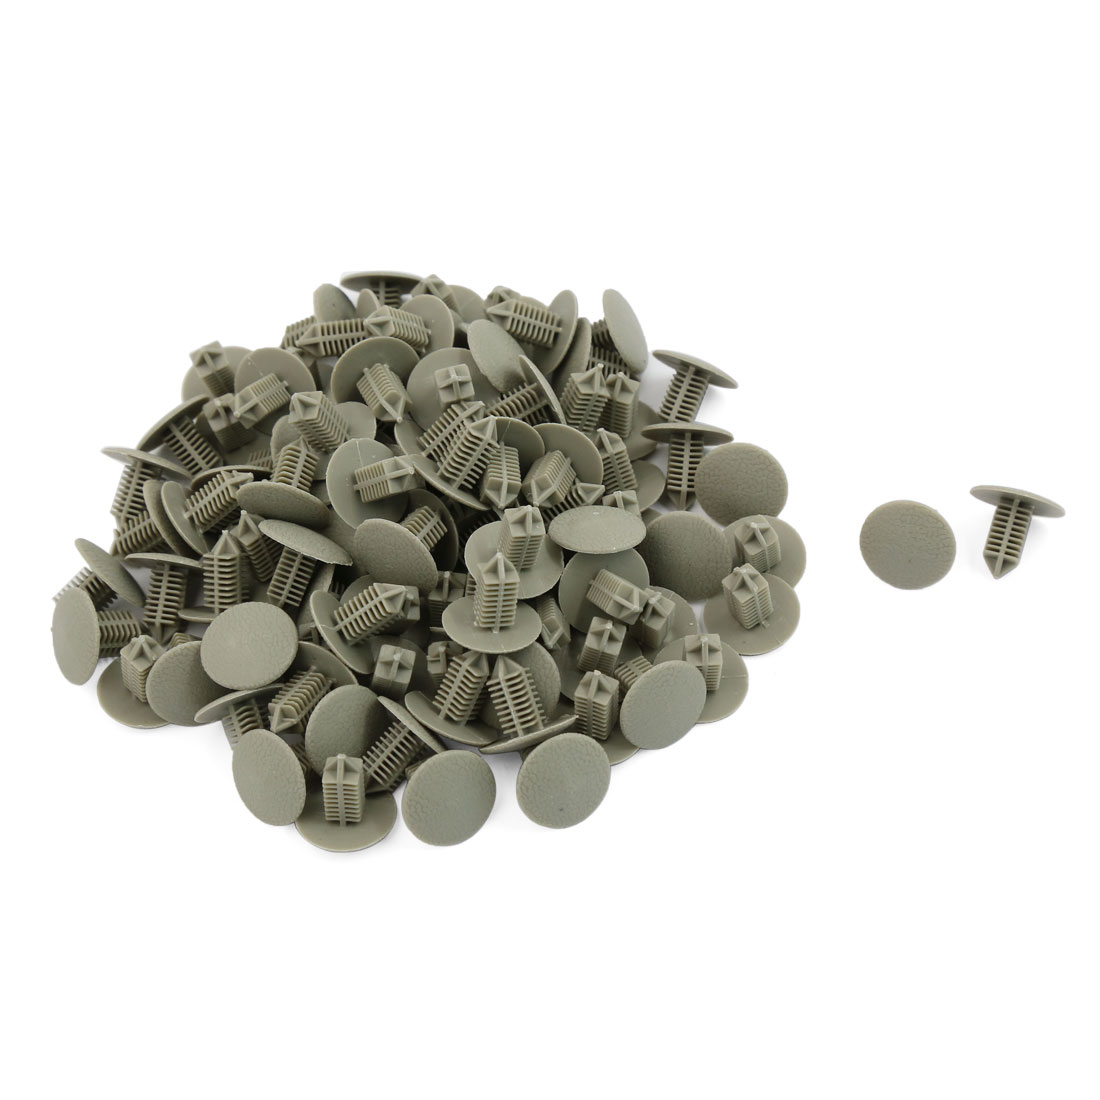 100 Pcs 6.5mm Hole Gray Plastic Rivets Bumper Door Fastener Push Clips for Car